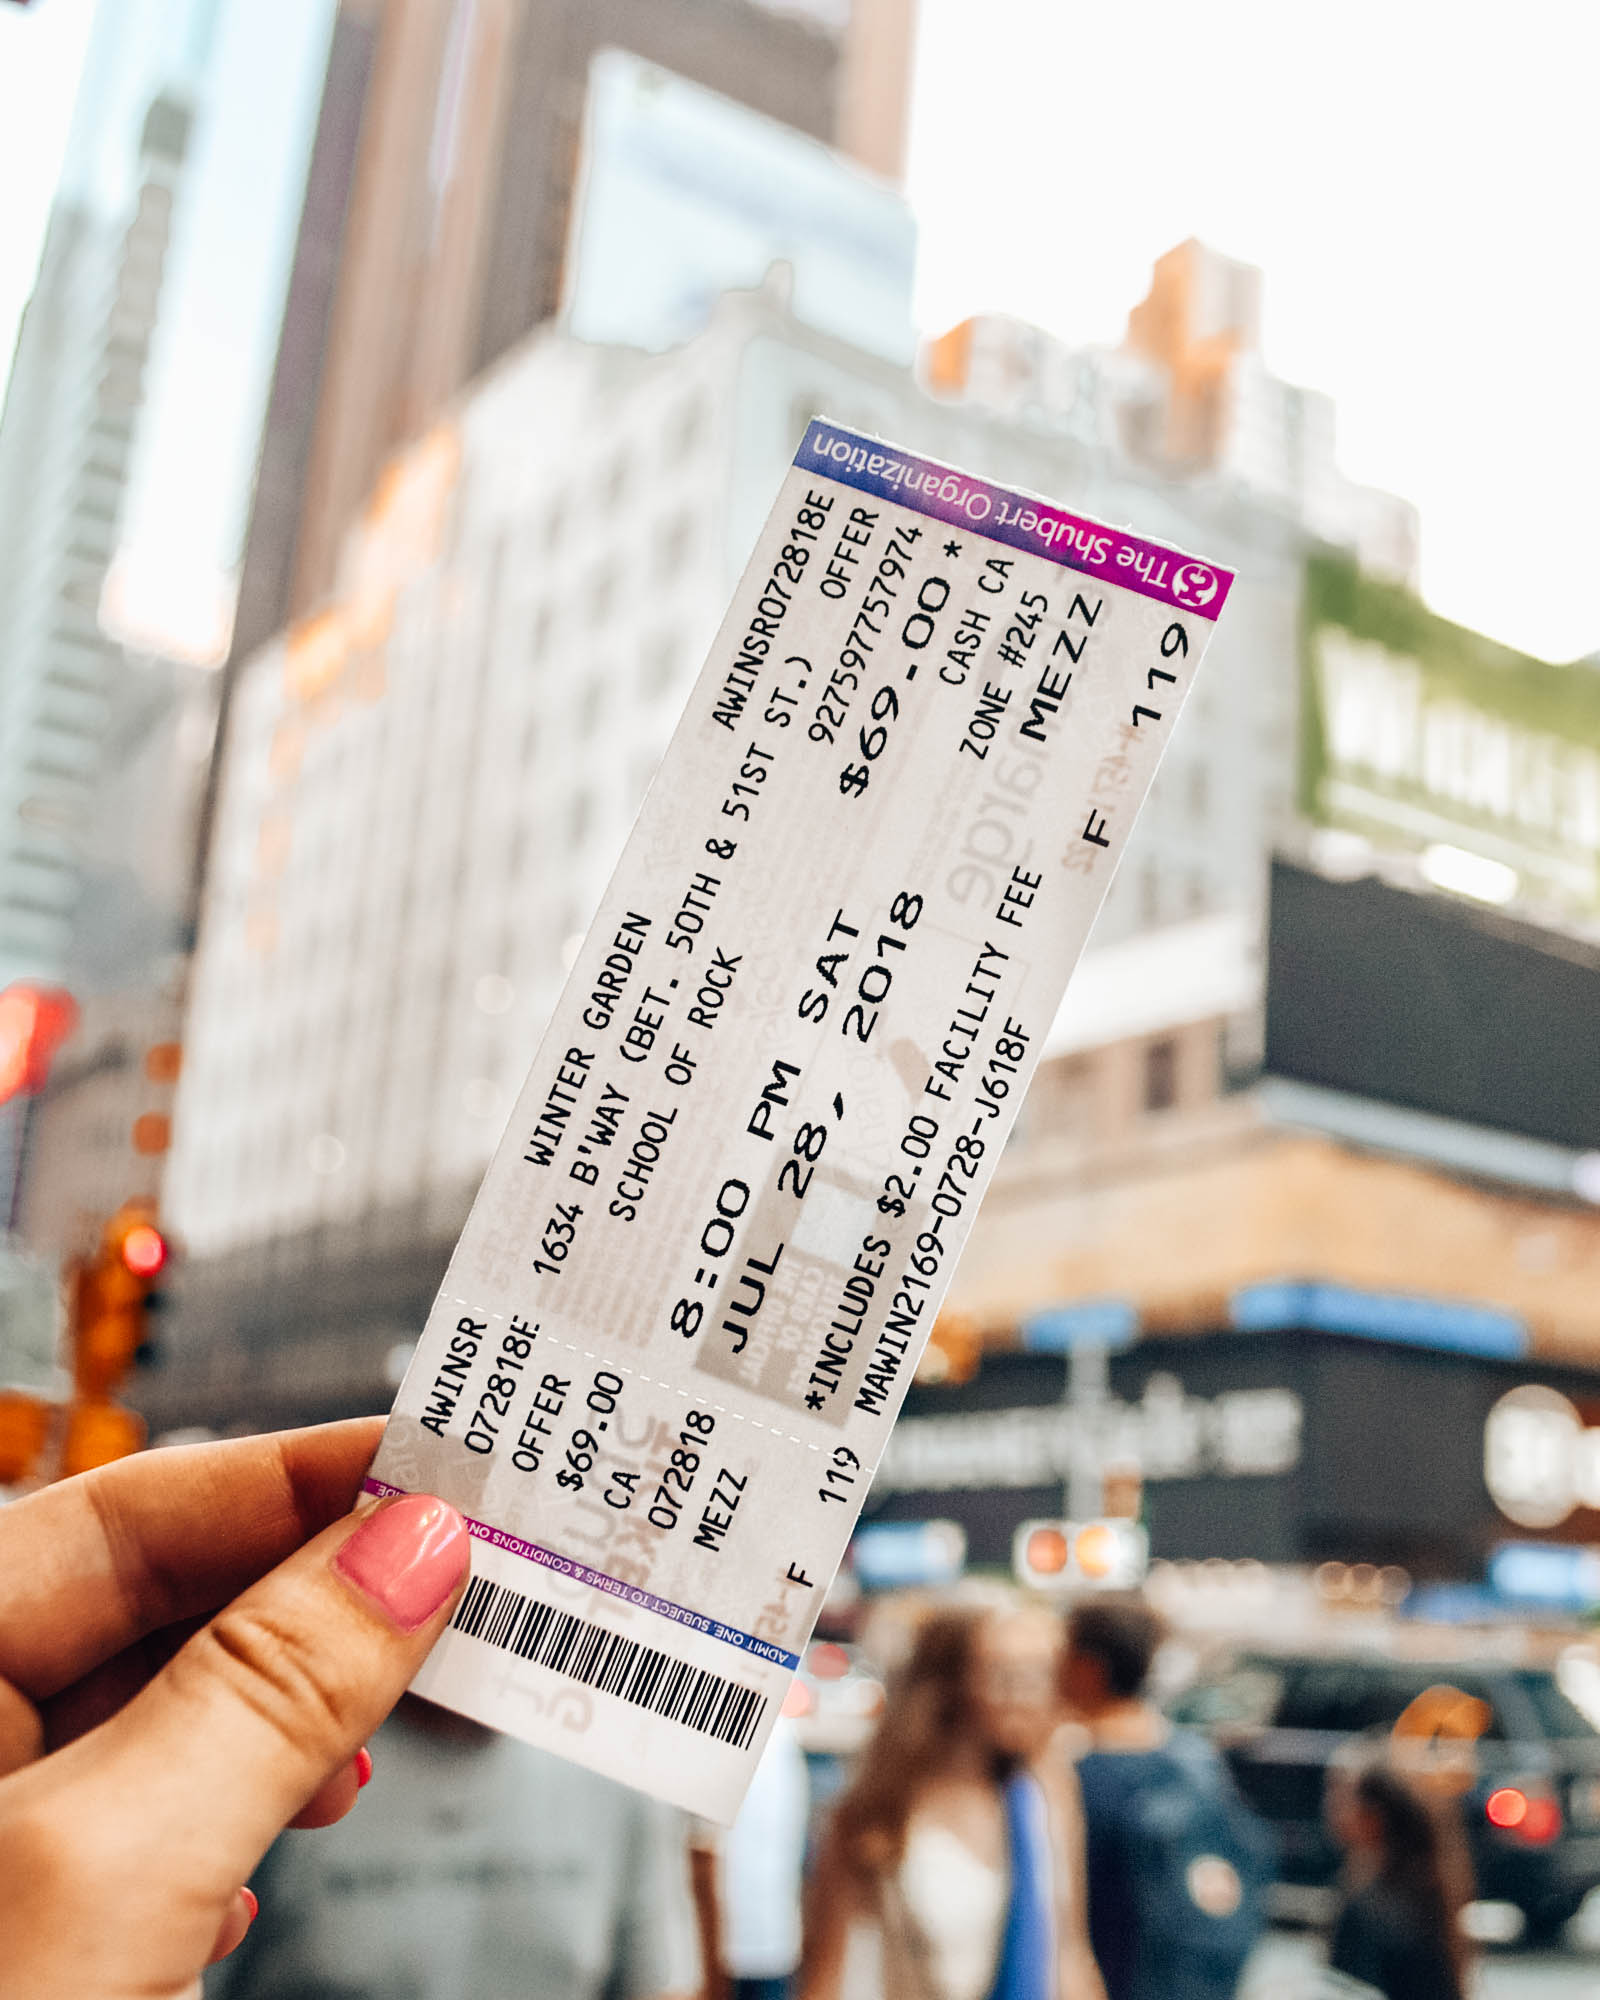 Broadway shows in New York - How to plan a night out in New York City! Planning for your budget, by neighborhood (or borough), how to get the best deals on Broadway tickets, and more! / goseekexplore.com / Ally Archer